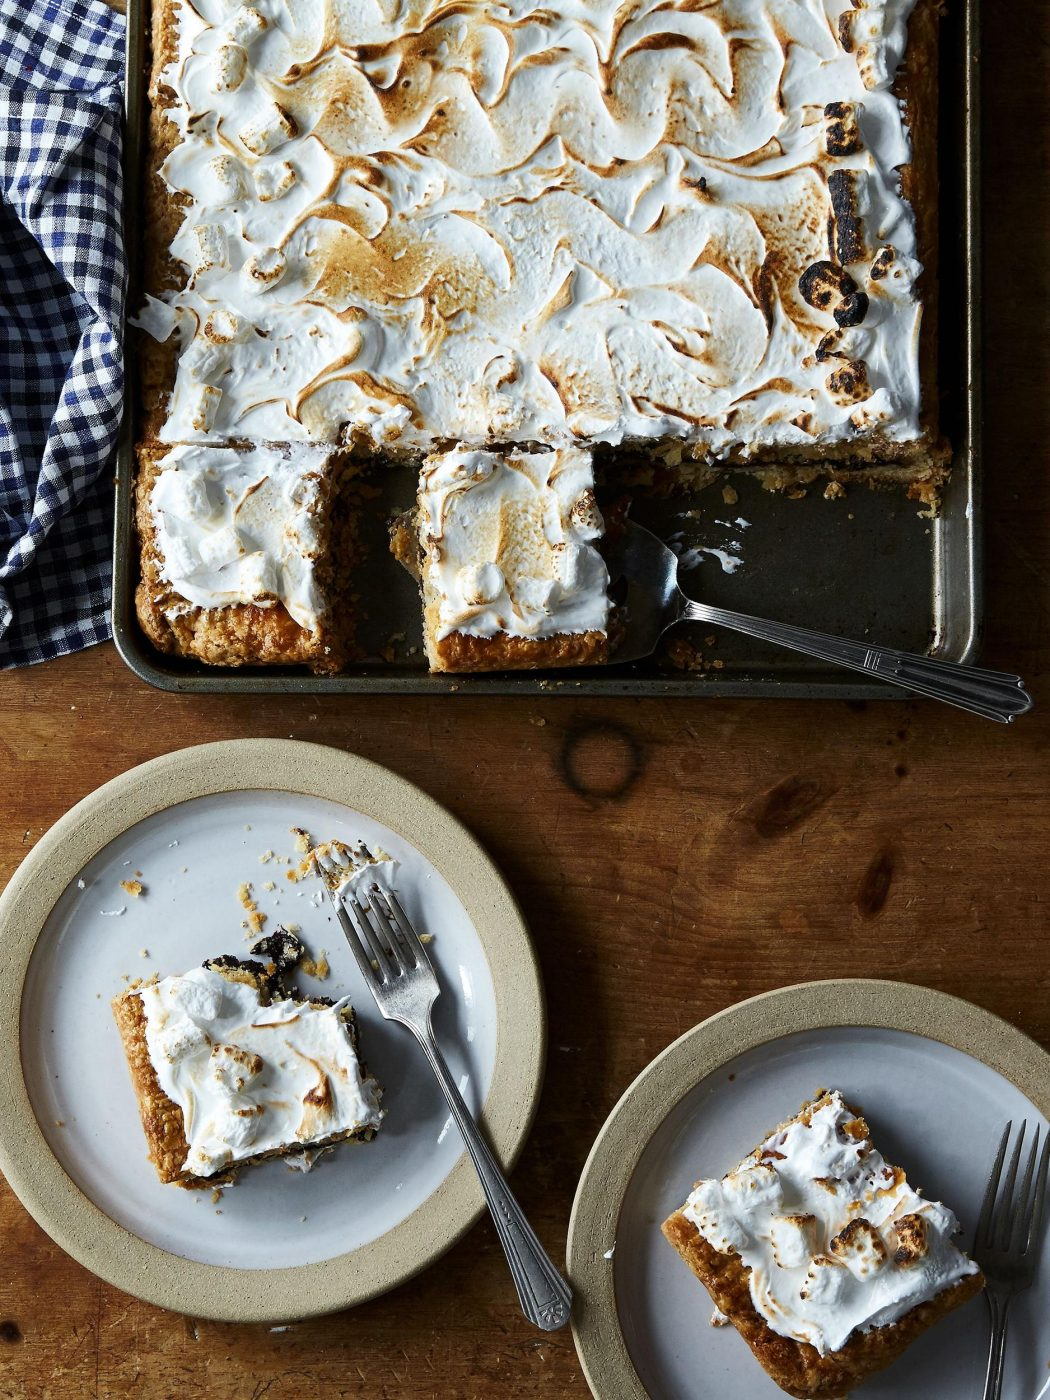 The Taste of This S'mores Slab Pie Doesn't Lie